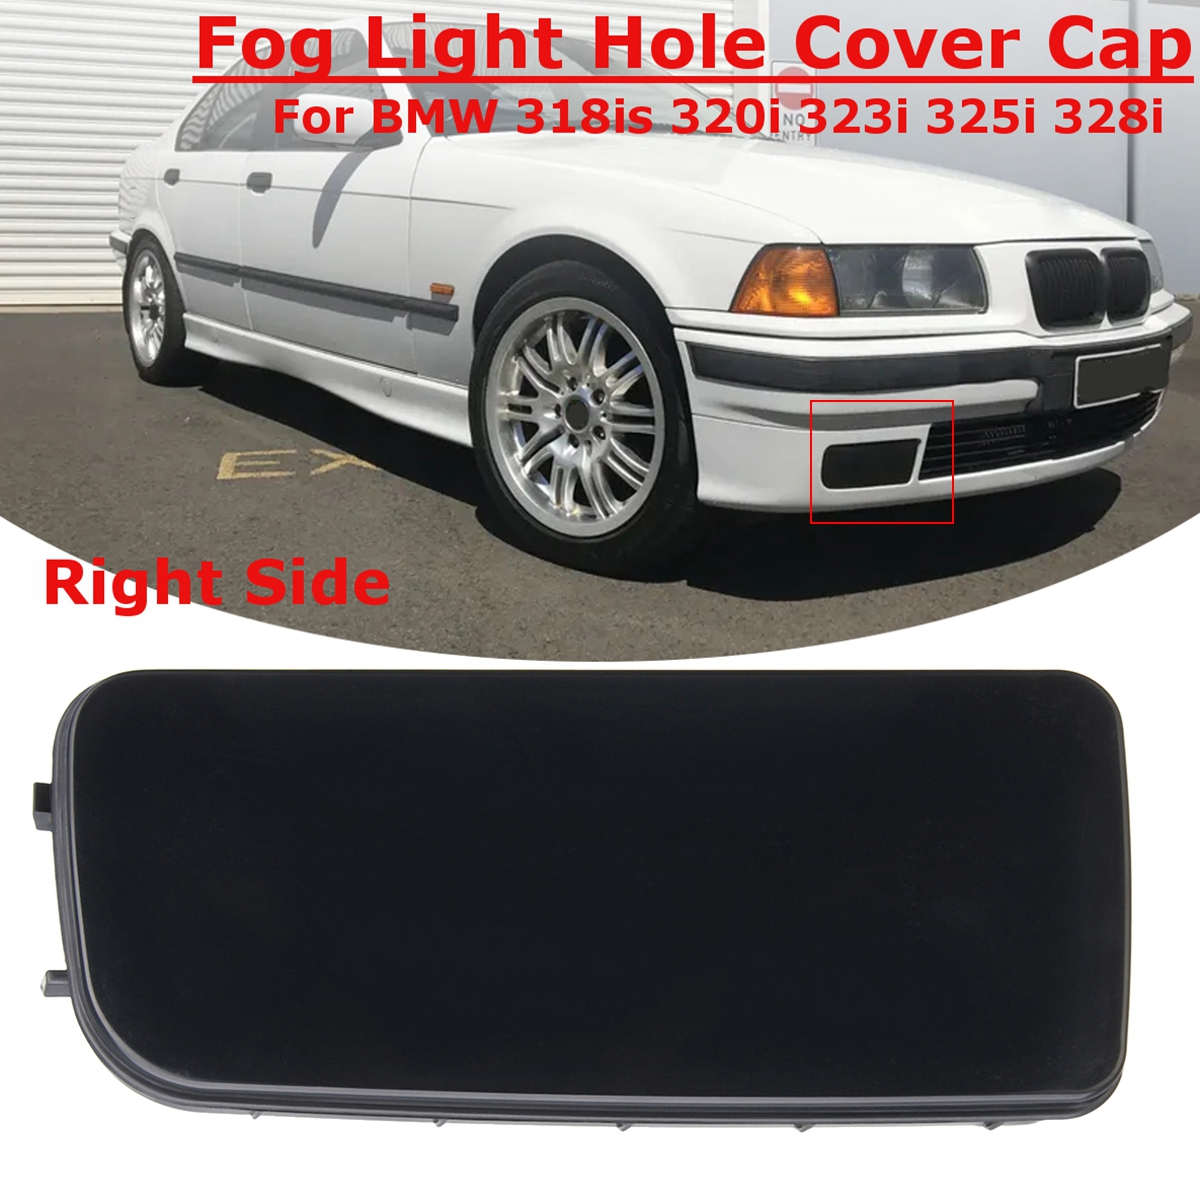 1Pc Right Fog Light Hole Mirror Cover Cap for BMW 3-Series E36 318is 320i 323i 325i 328i